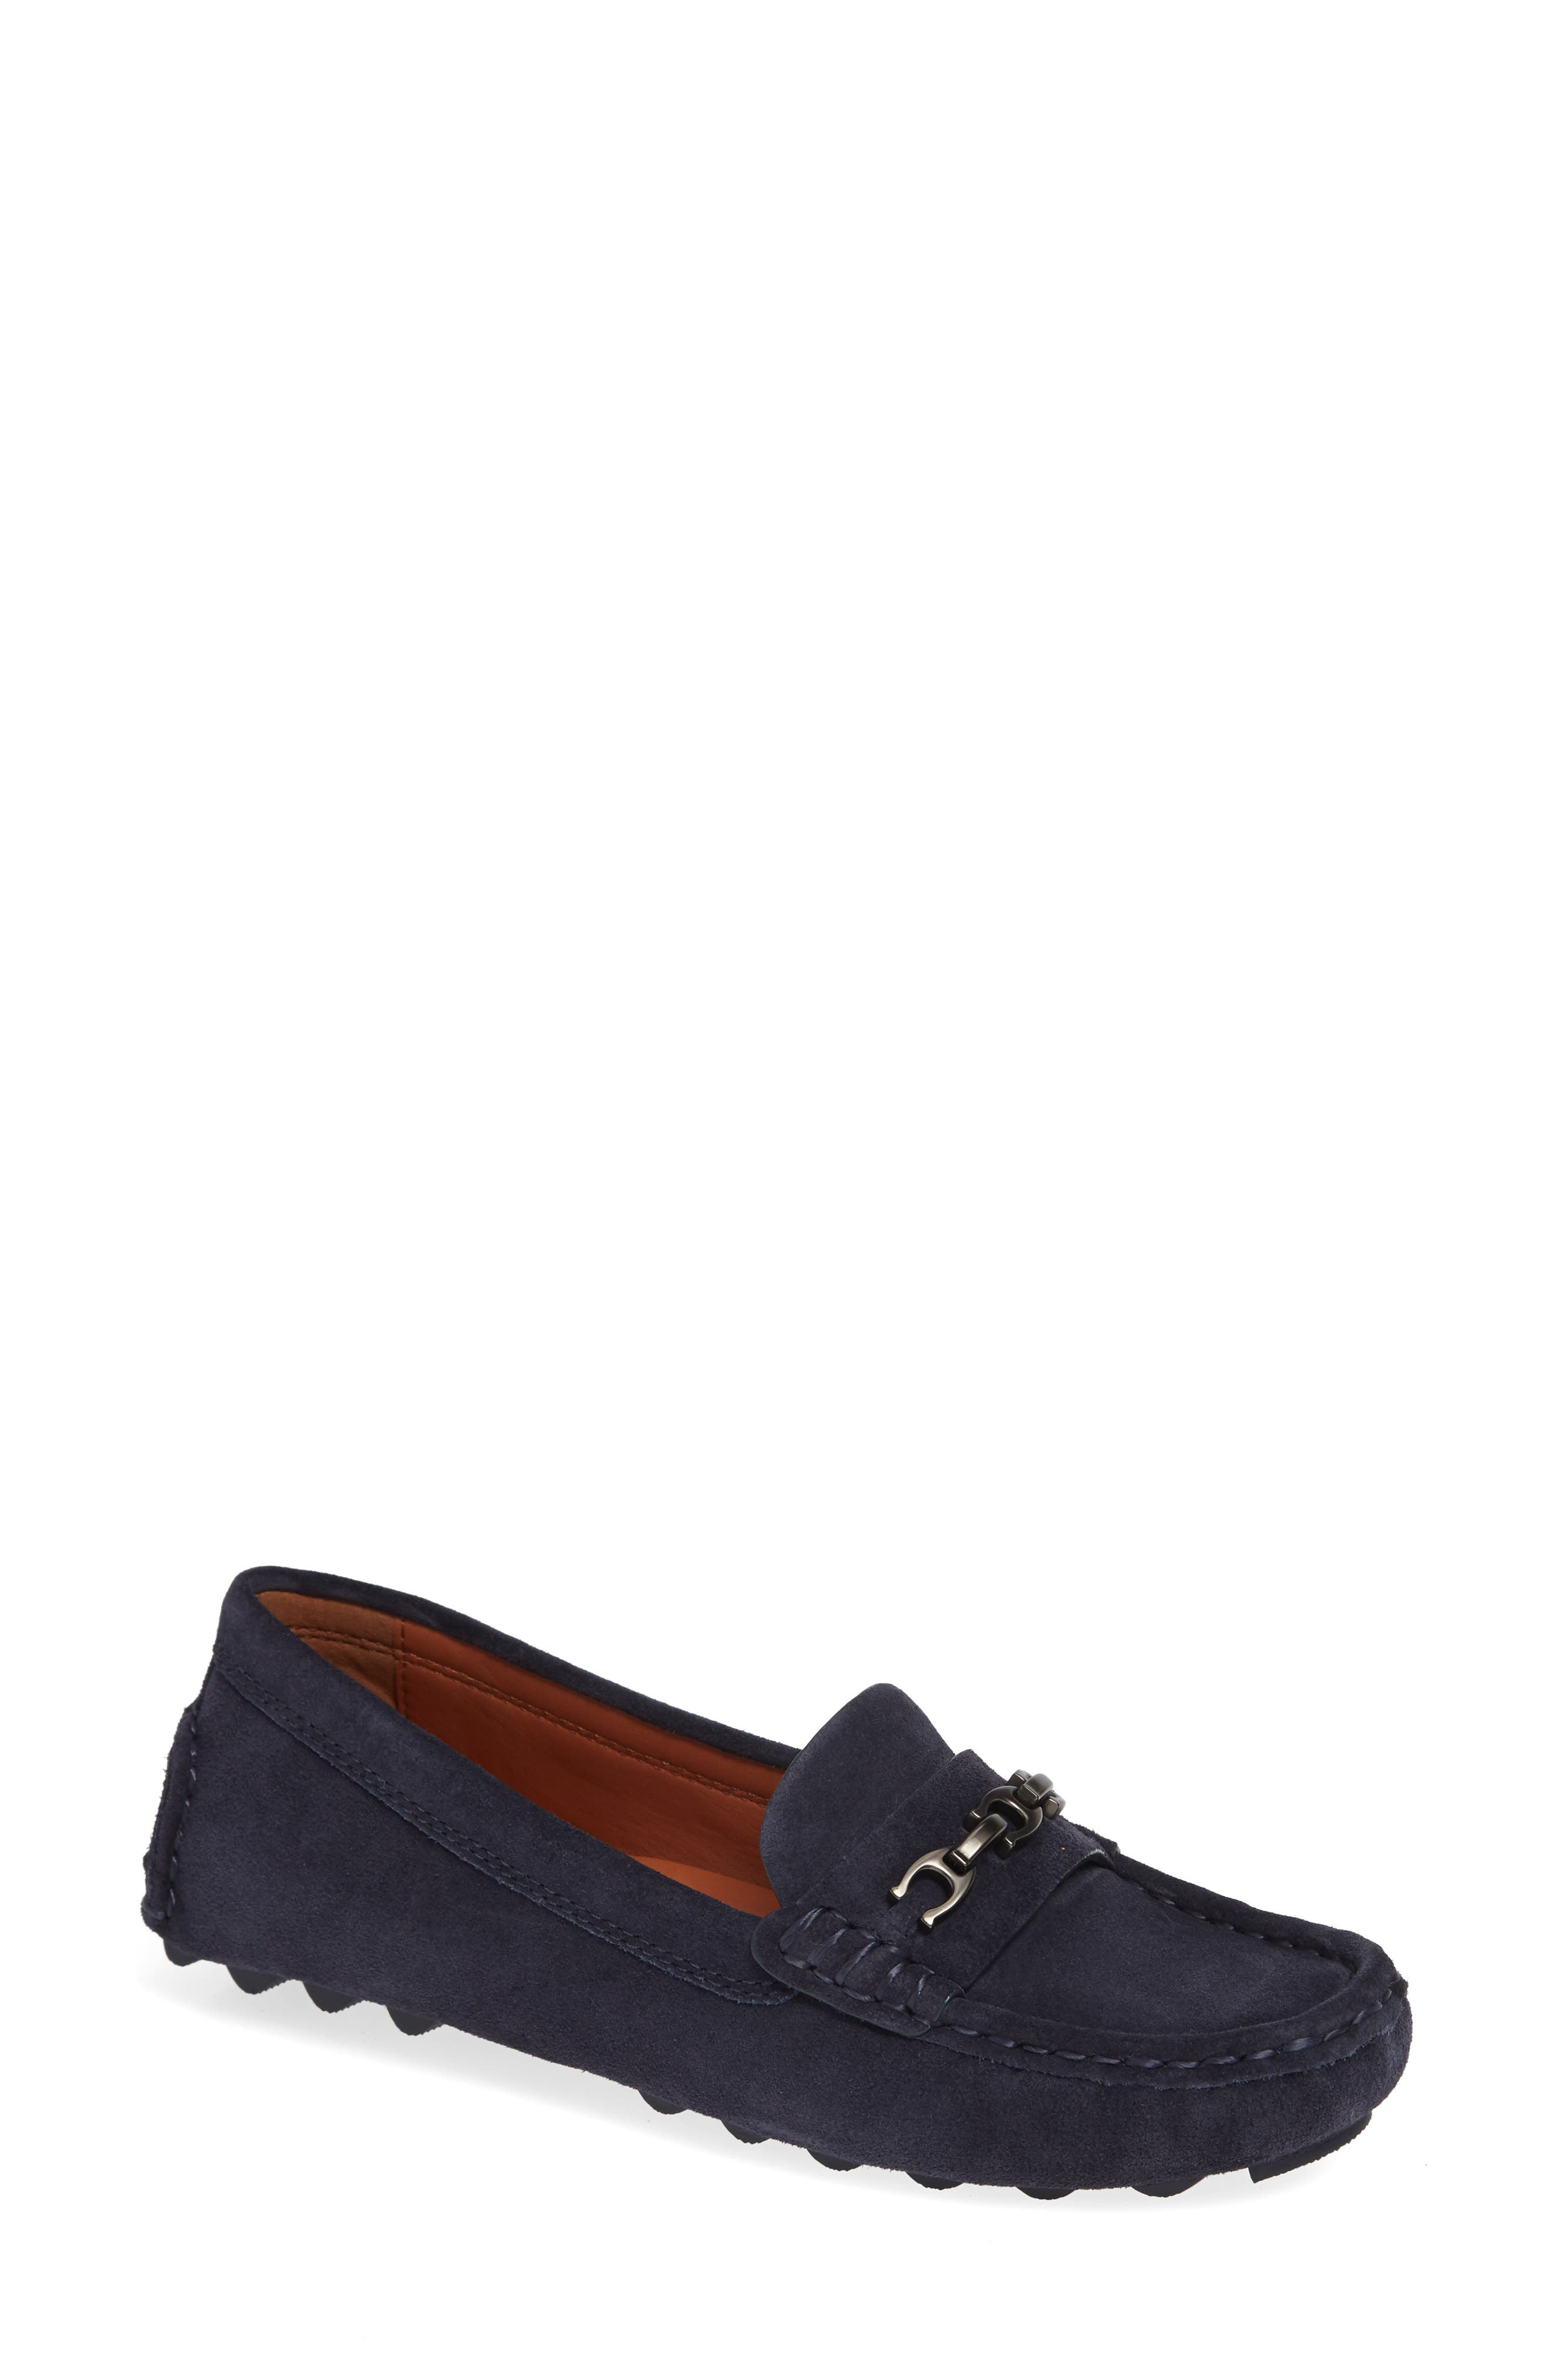 Crosby Driver Loafer,                             Main thumbnail 1, color,                             MIDNIGHT NAVY SUEDE